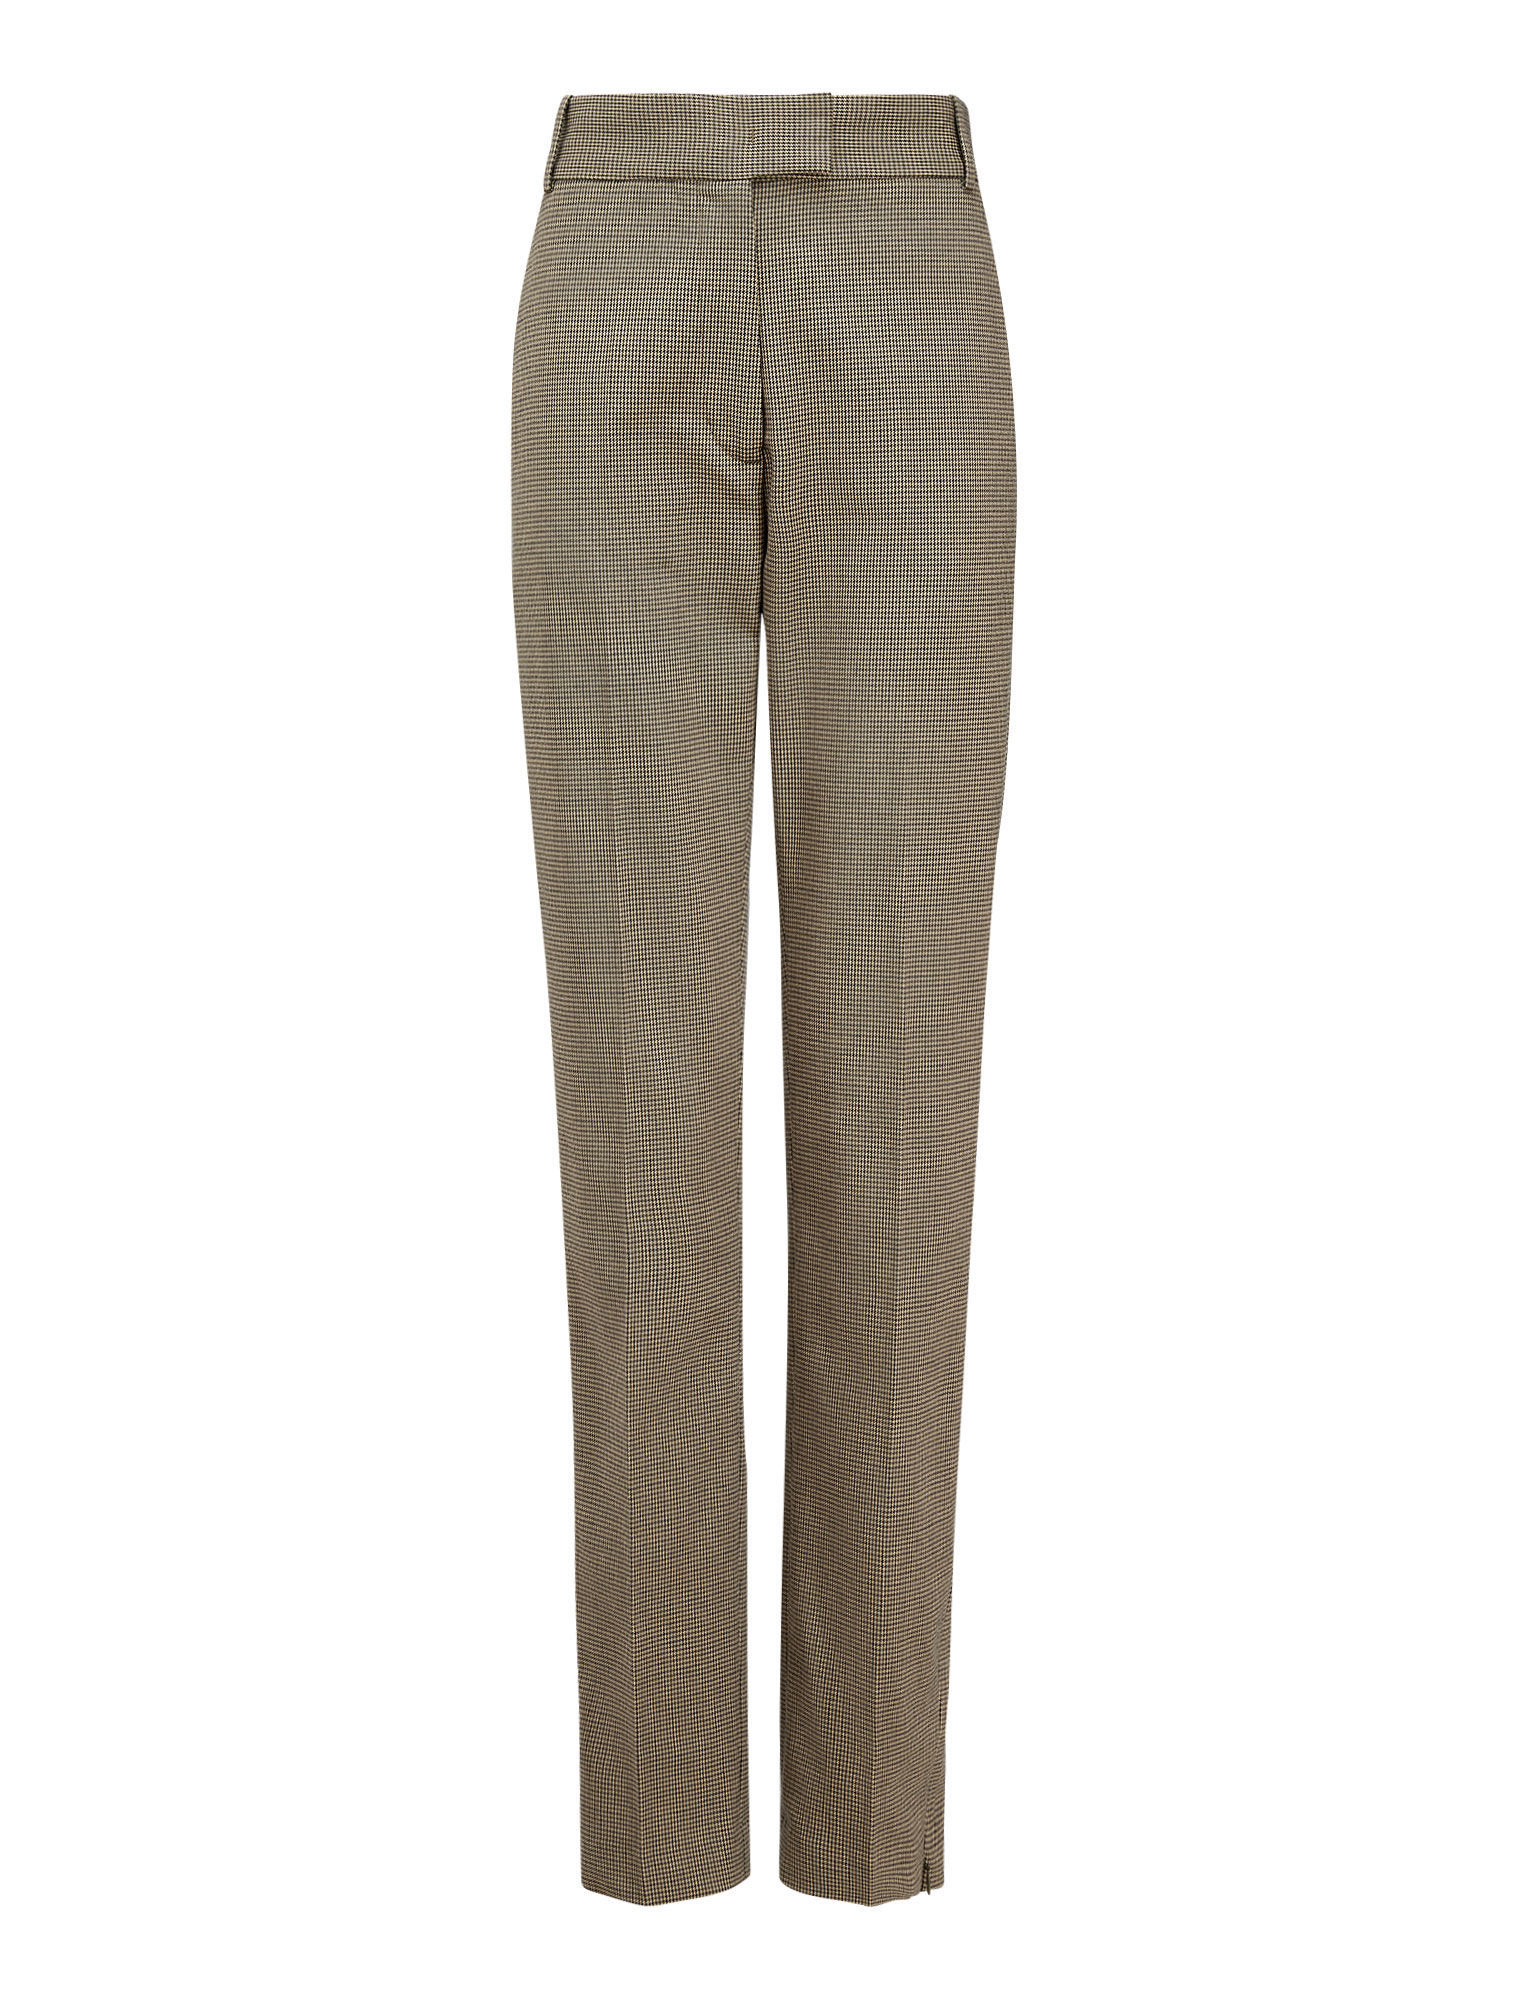 Reeve Dogtooth Stretch Trousers